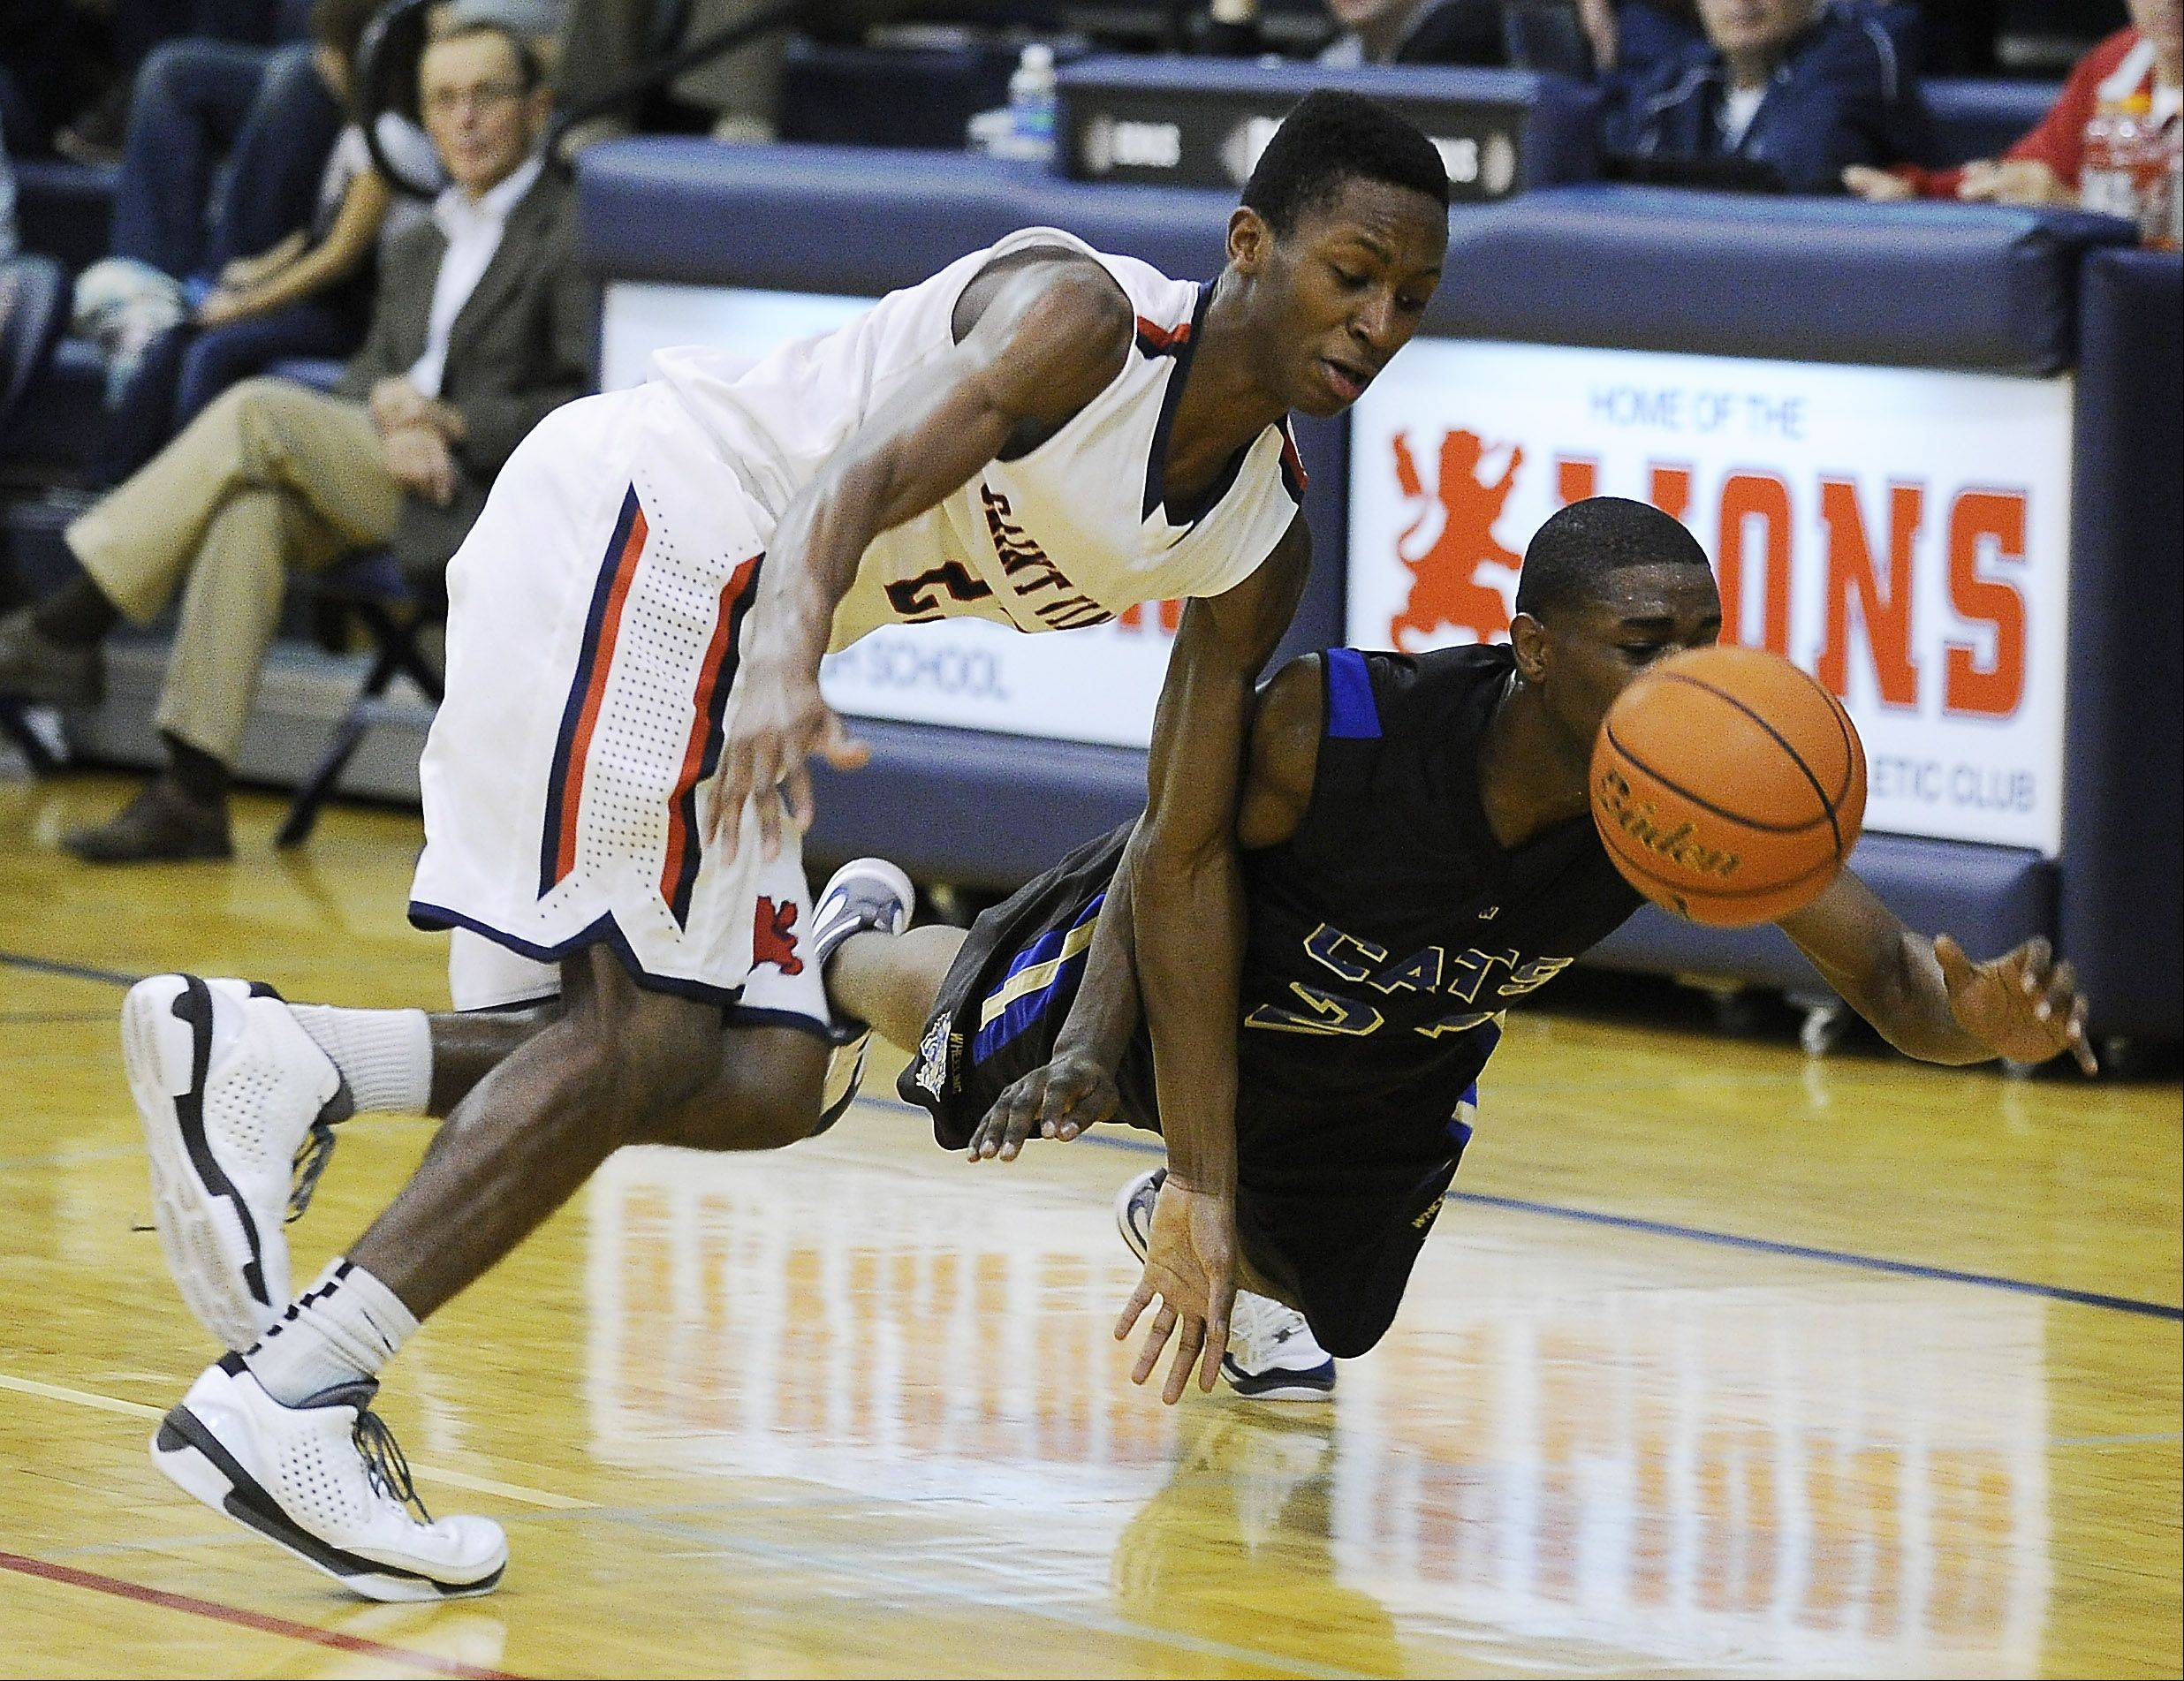 St.Viator's Ore Arogundade and Lamont McPherson of Wheeling chase down a loose ball in the Varsity Thanksgiving Basketball Tournament at St. Viator High School on Friday.